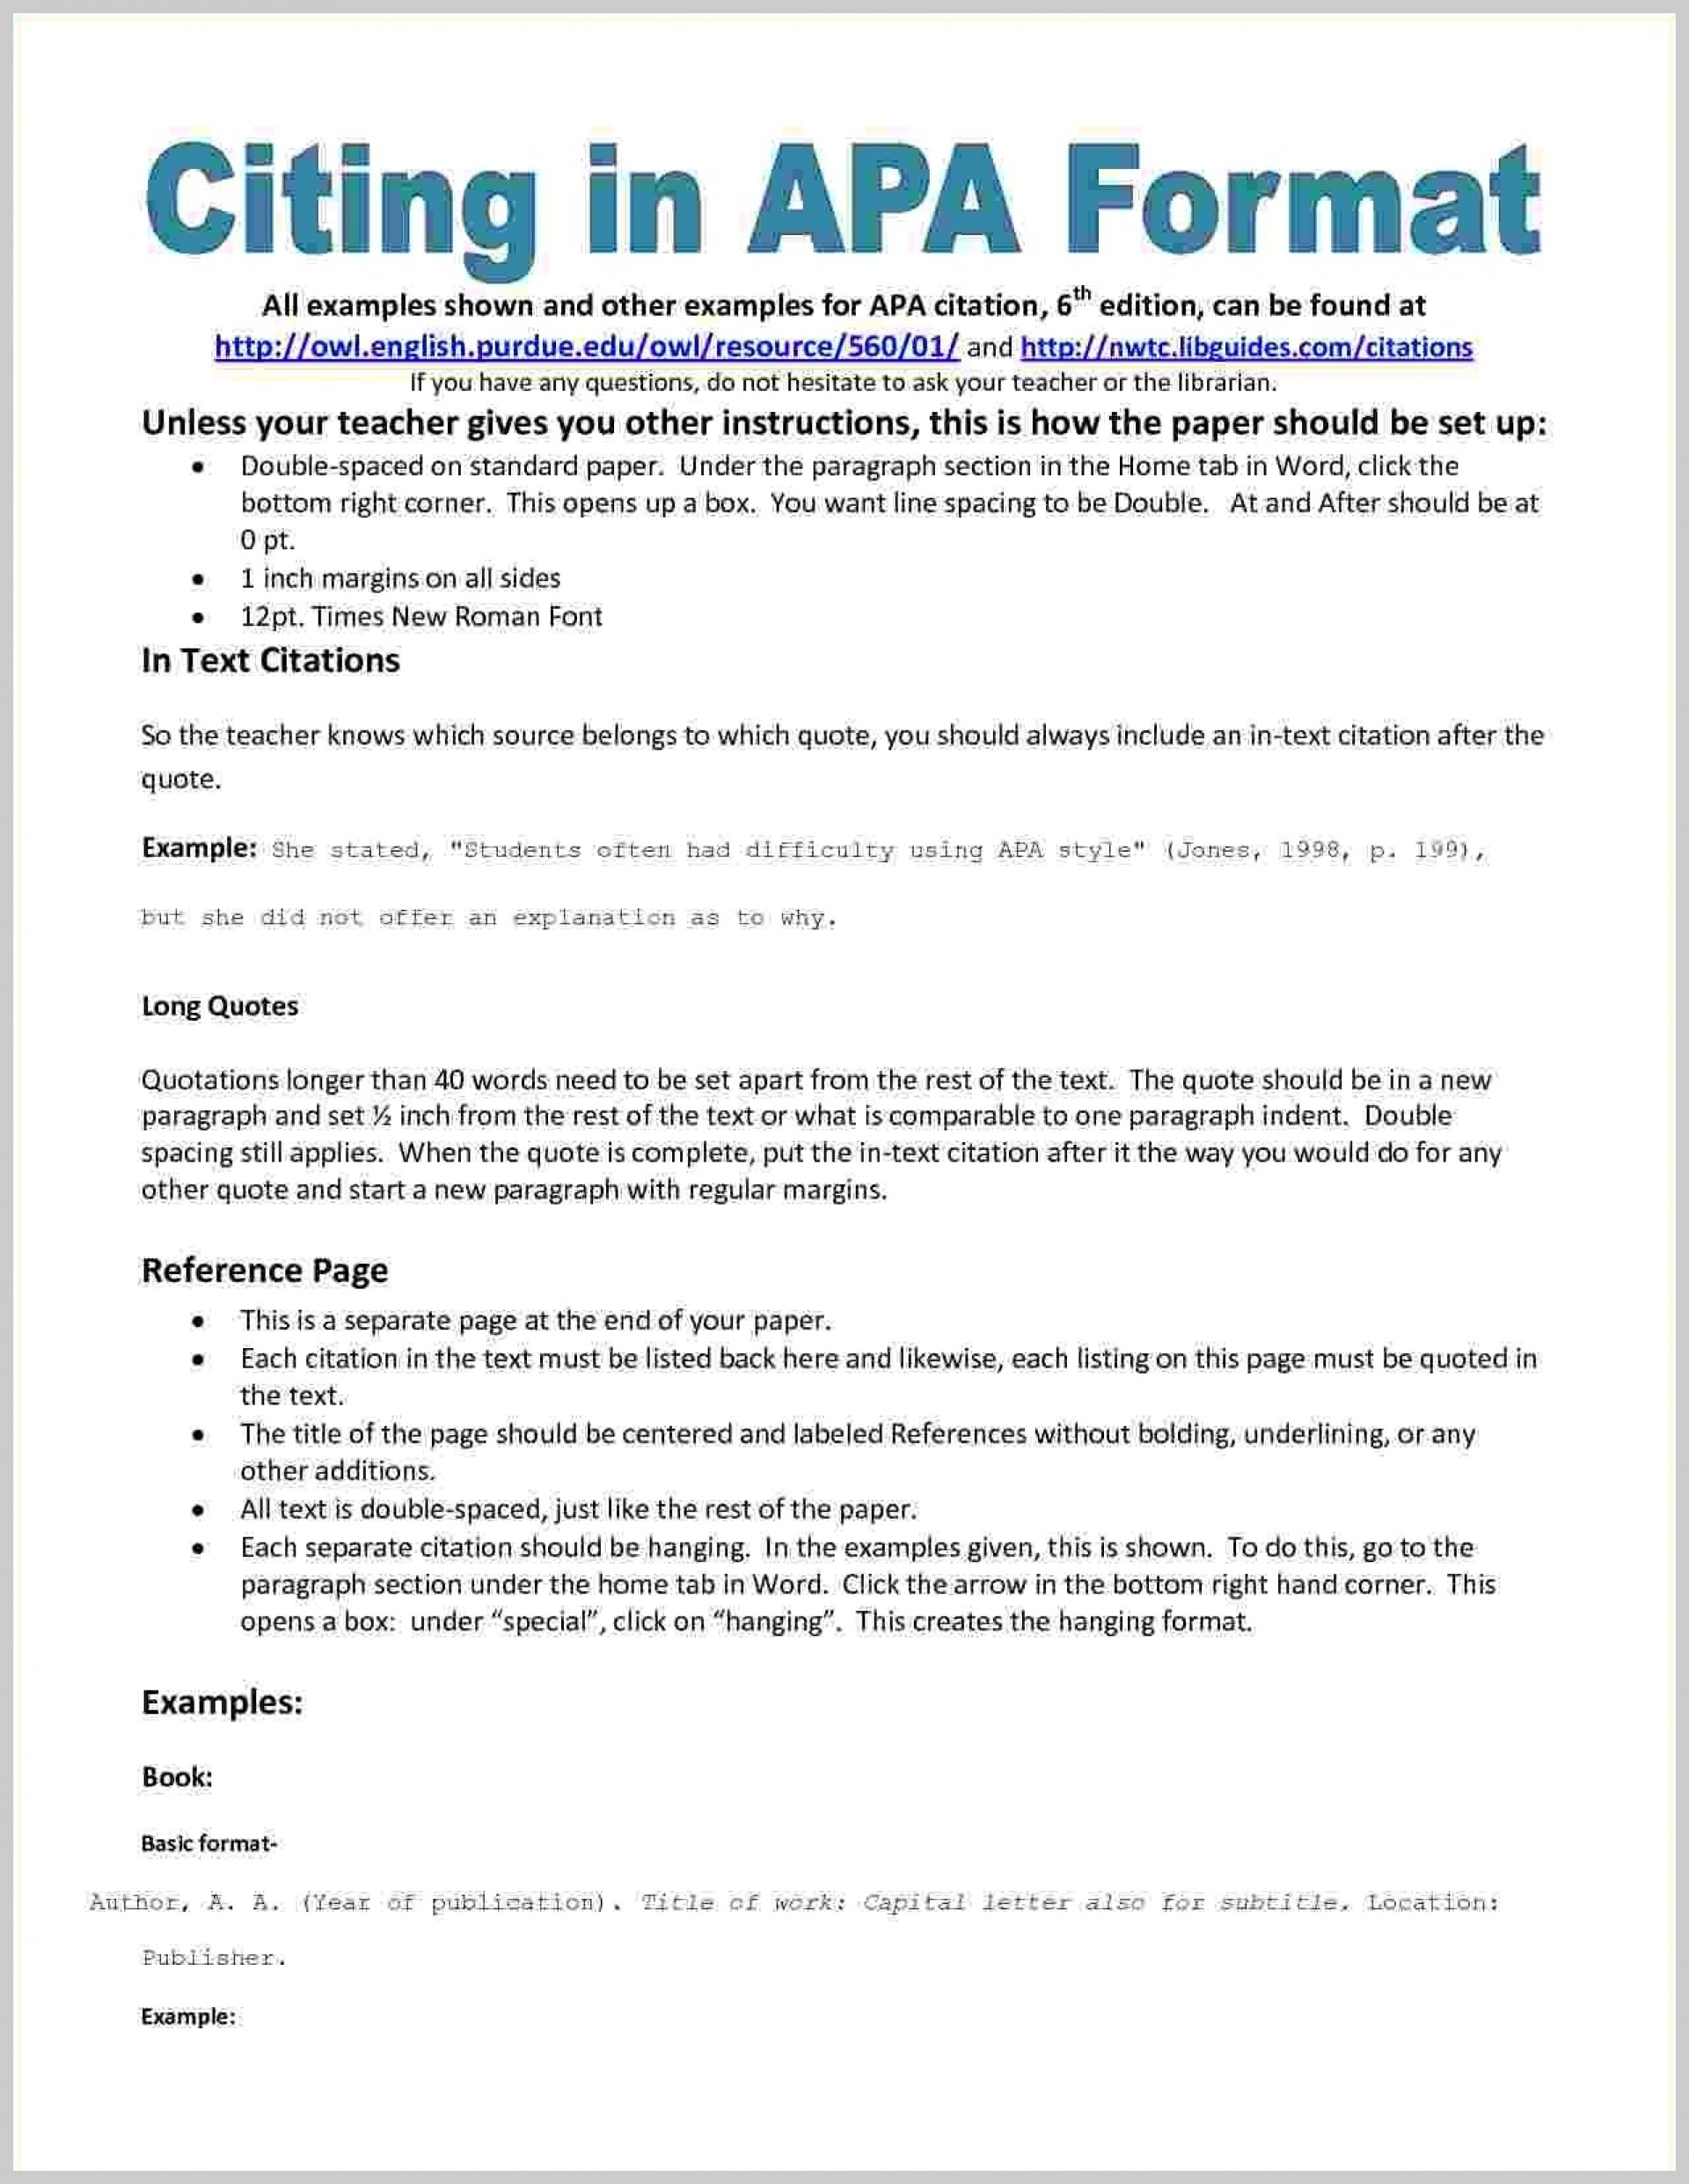 003 Research Paper Database Papers Apa Style Reference In Text Citation Mla Examples Toreto Co Stirring Pdf Online Distributed 1920